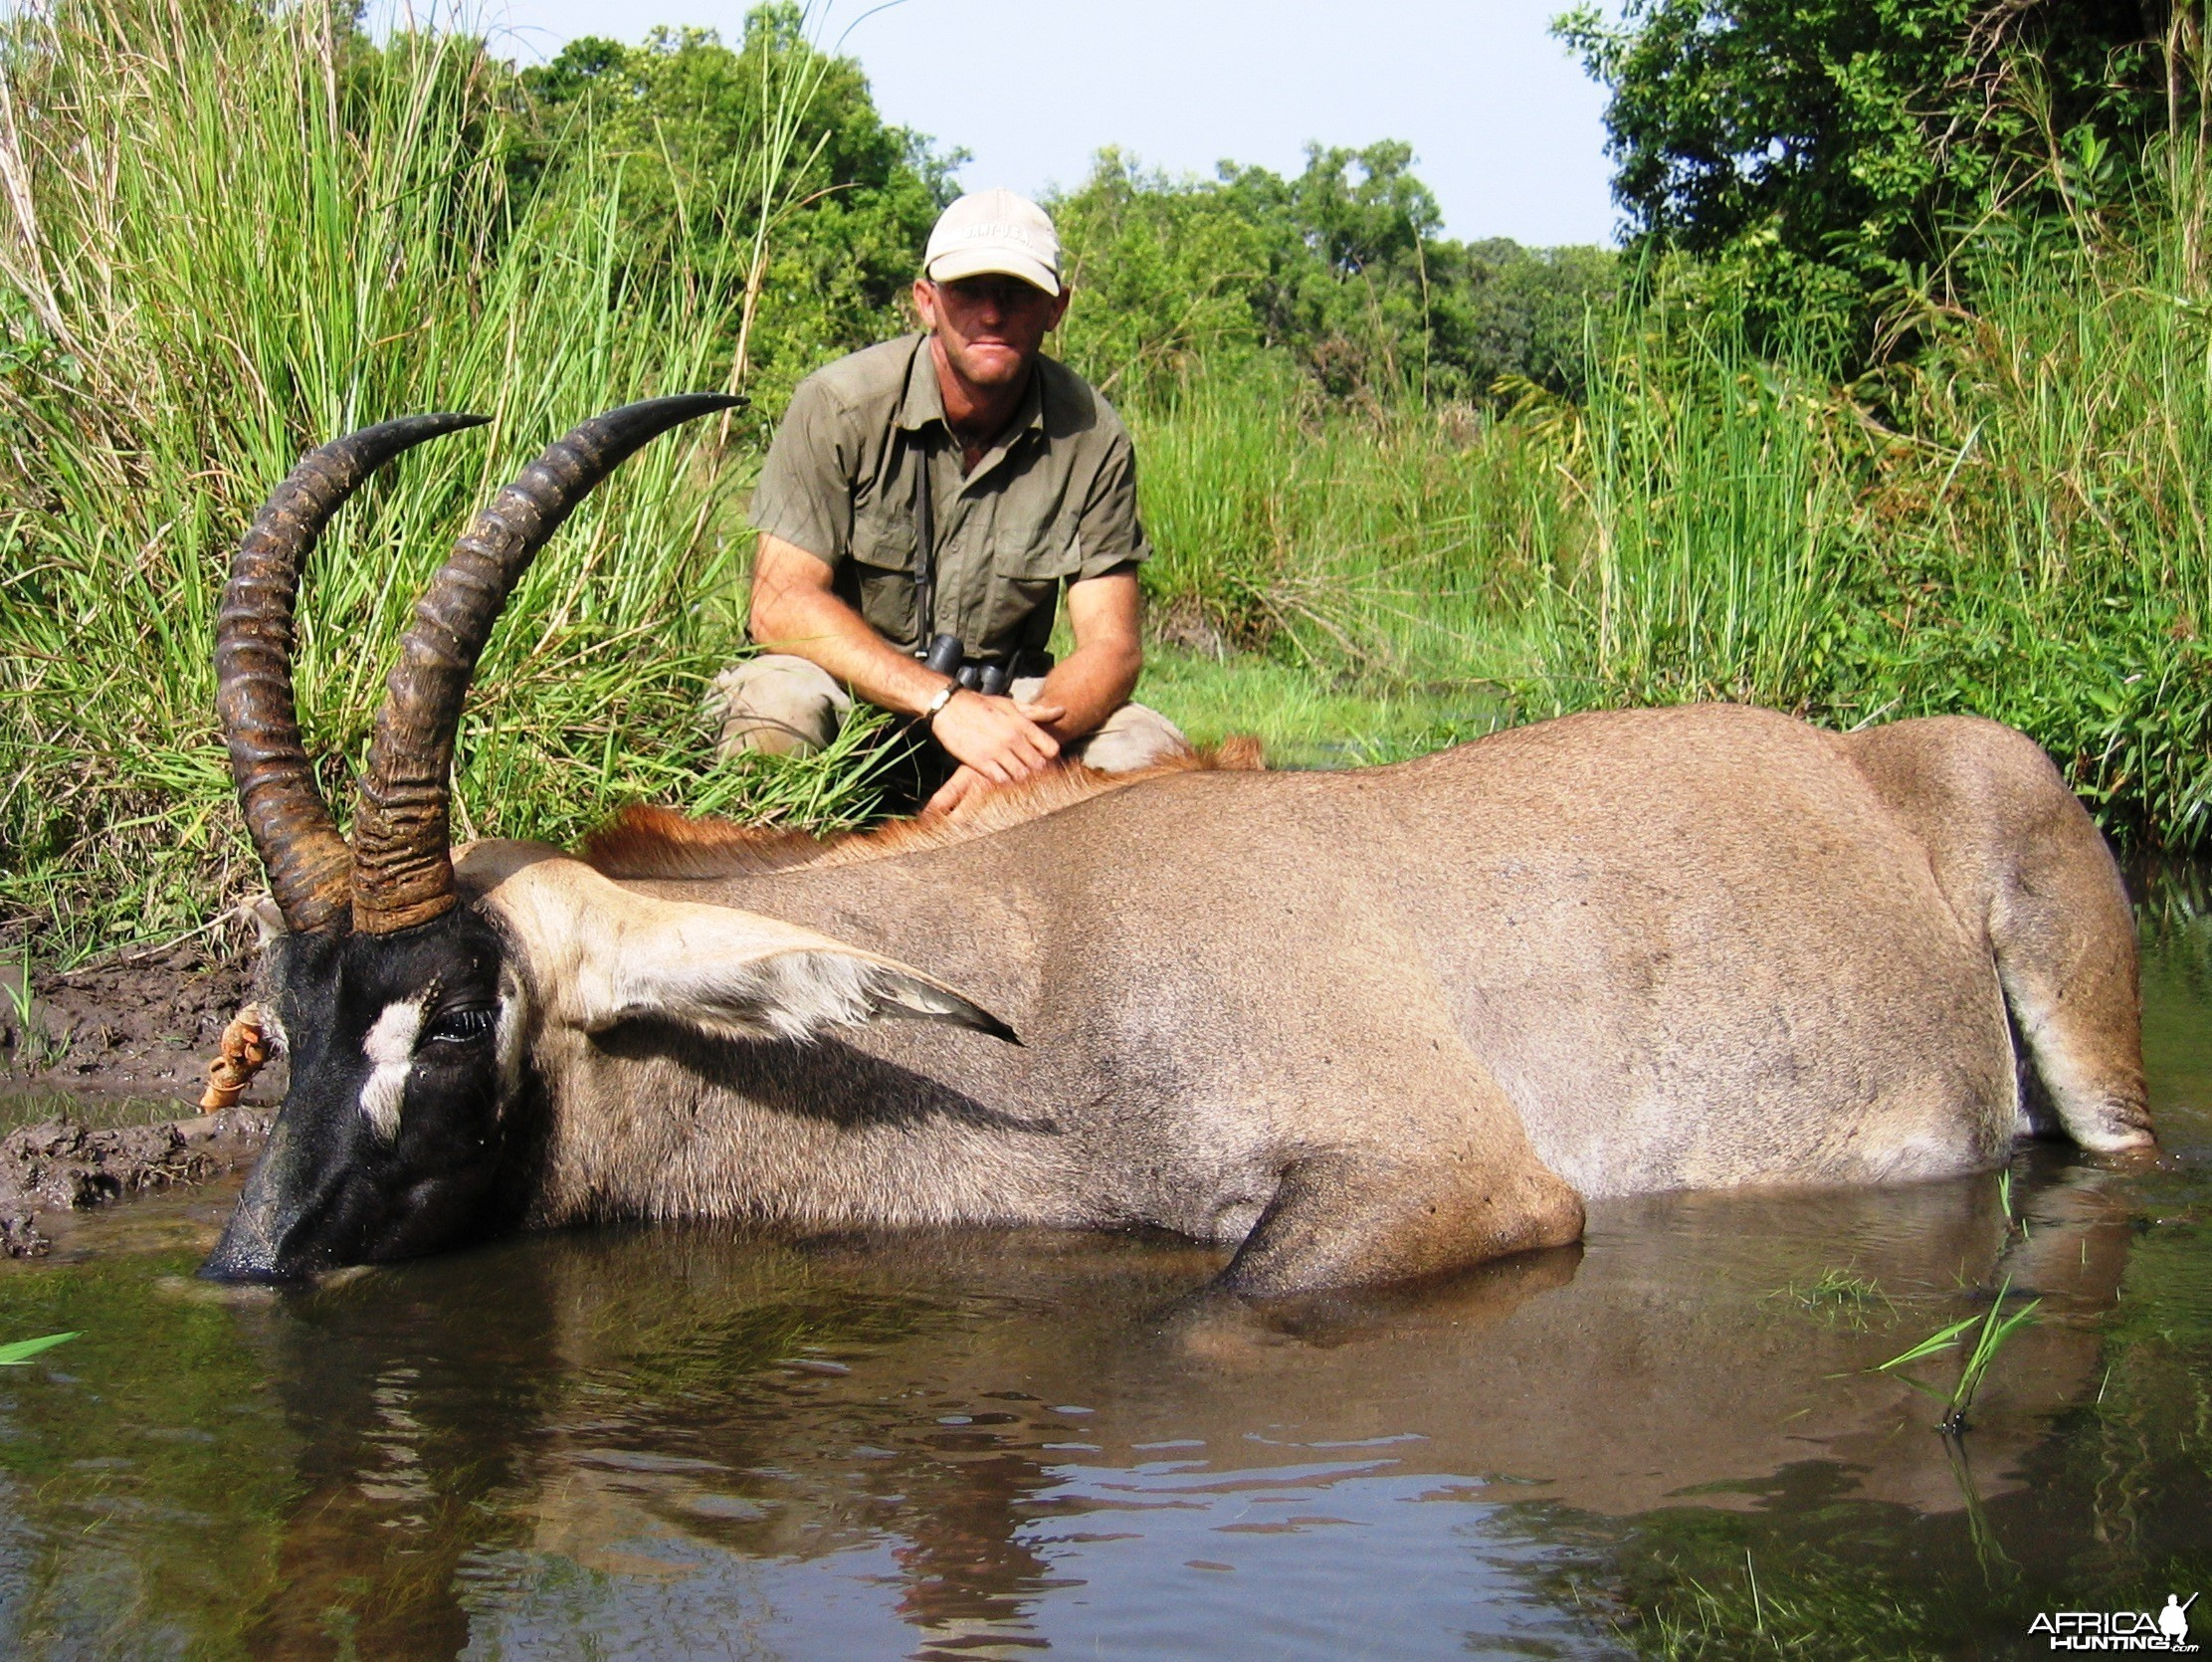 I shot this Roan while he was eating algae in the river !!!